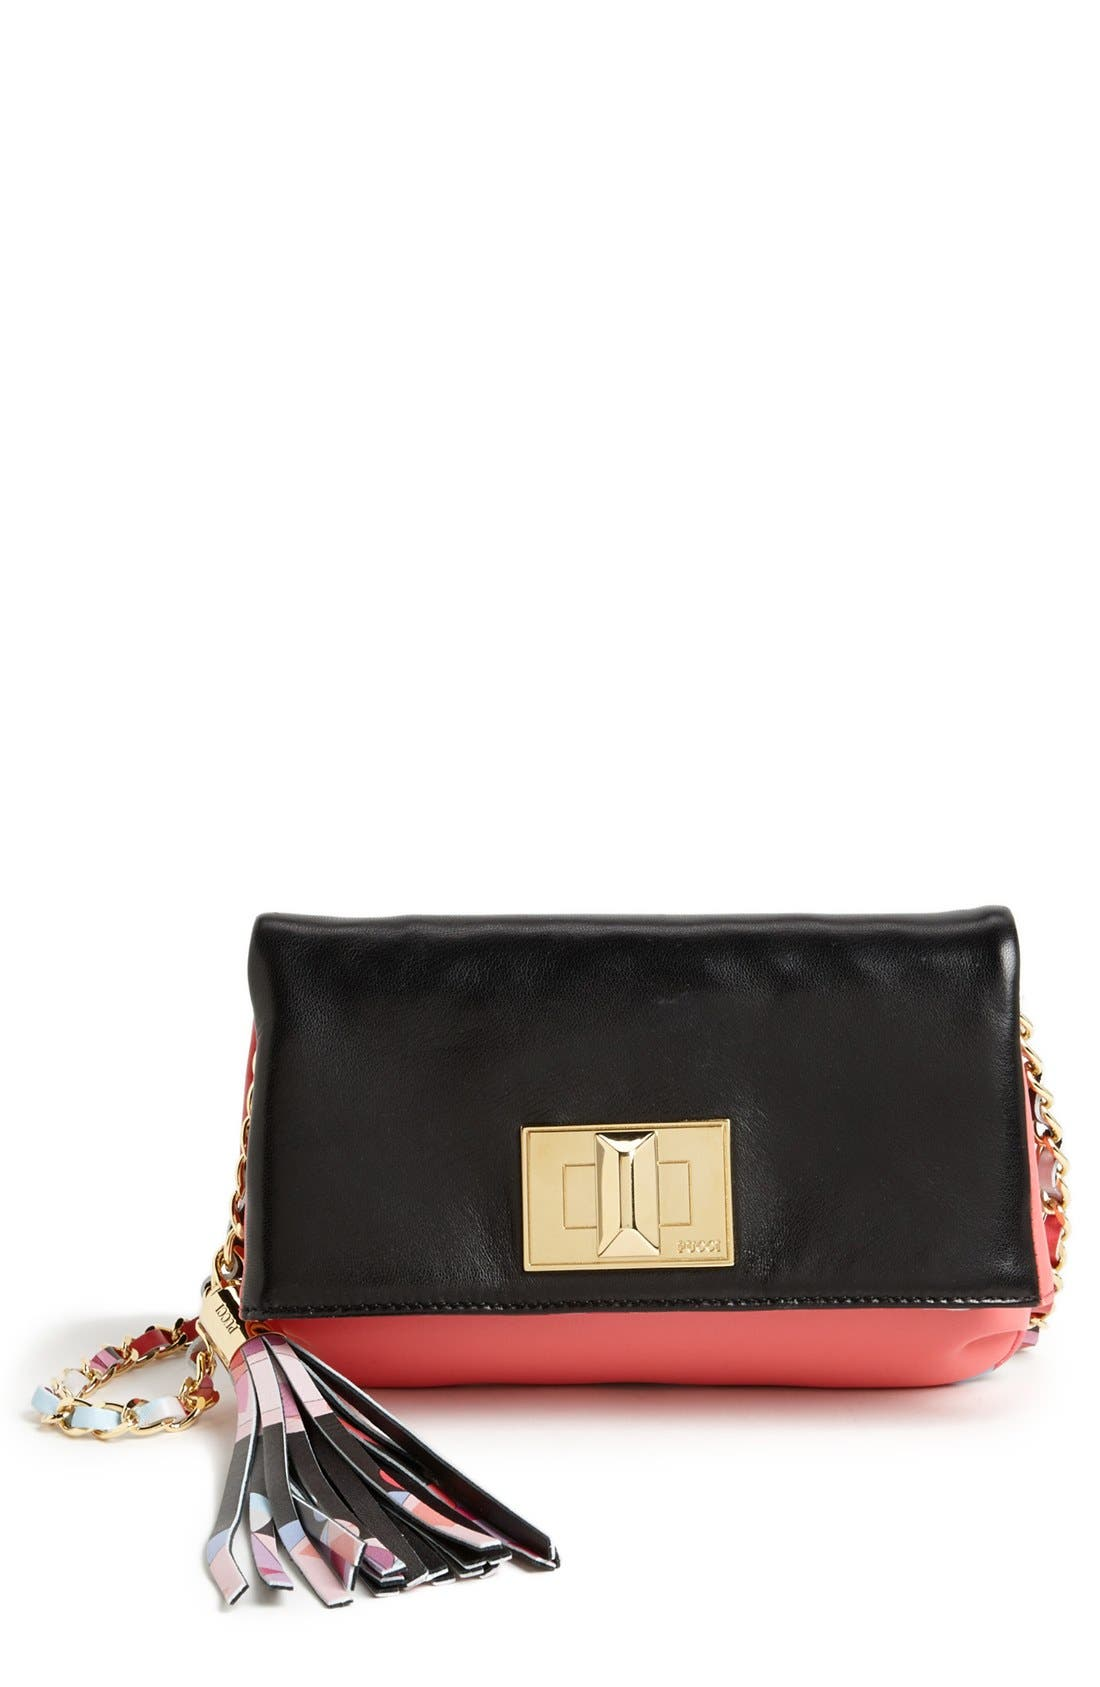 Alternate Image 1 Selected - Emilio Pucci 'Mini' Colorblock Lambskin Leather Crossbody Bag